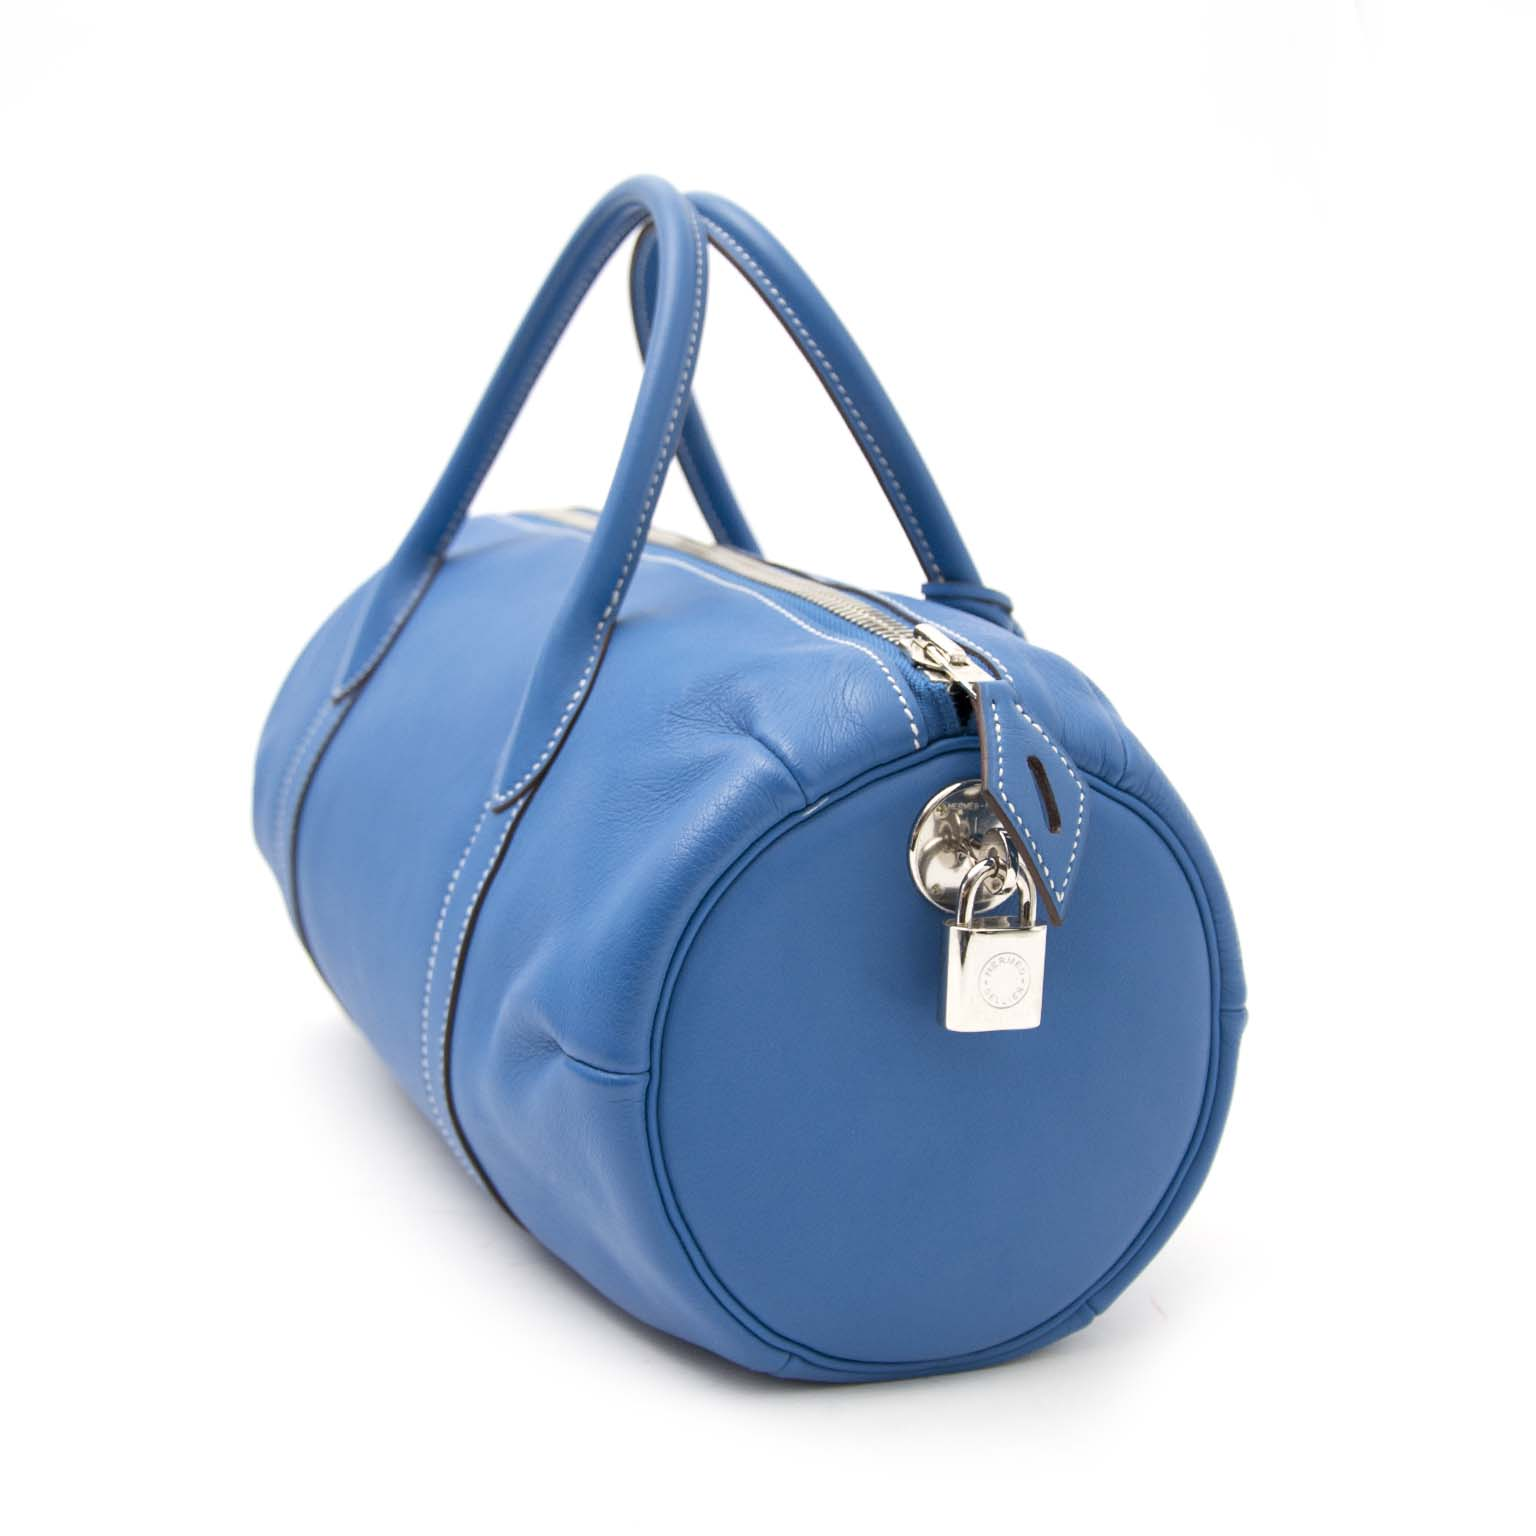 Hermès Blue Shoulder Bag  bosten like secondhand luxury